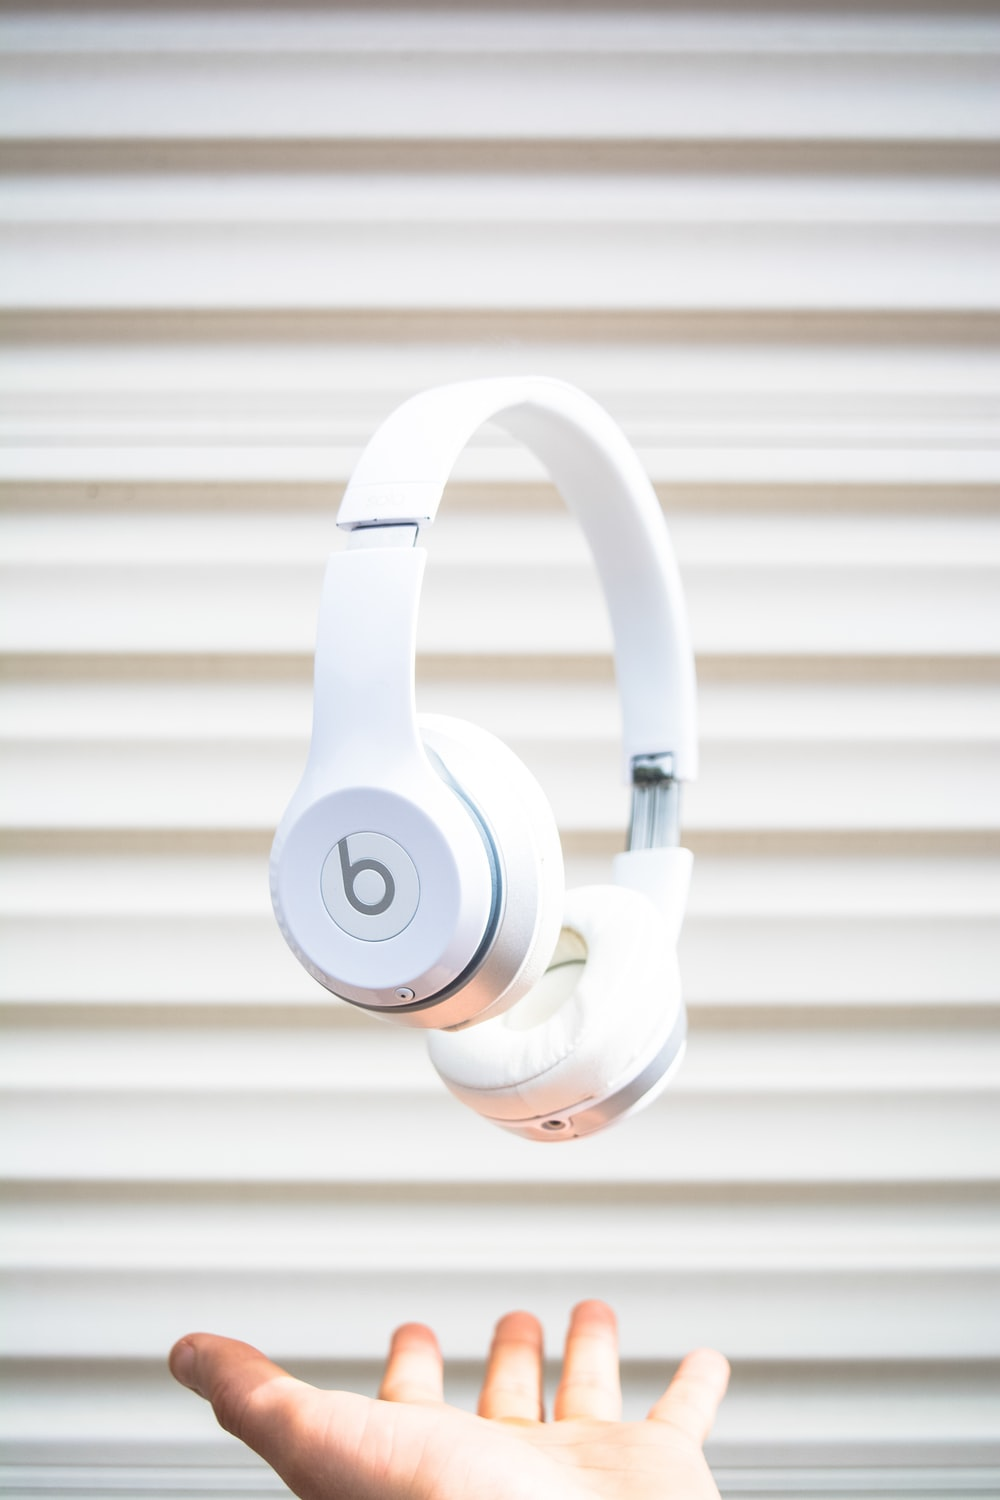 white Beats by Dr. Dre headphones on mid air